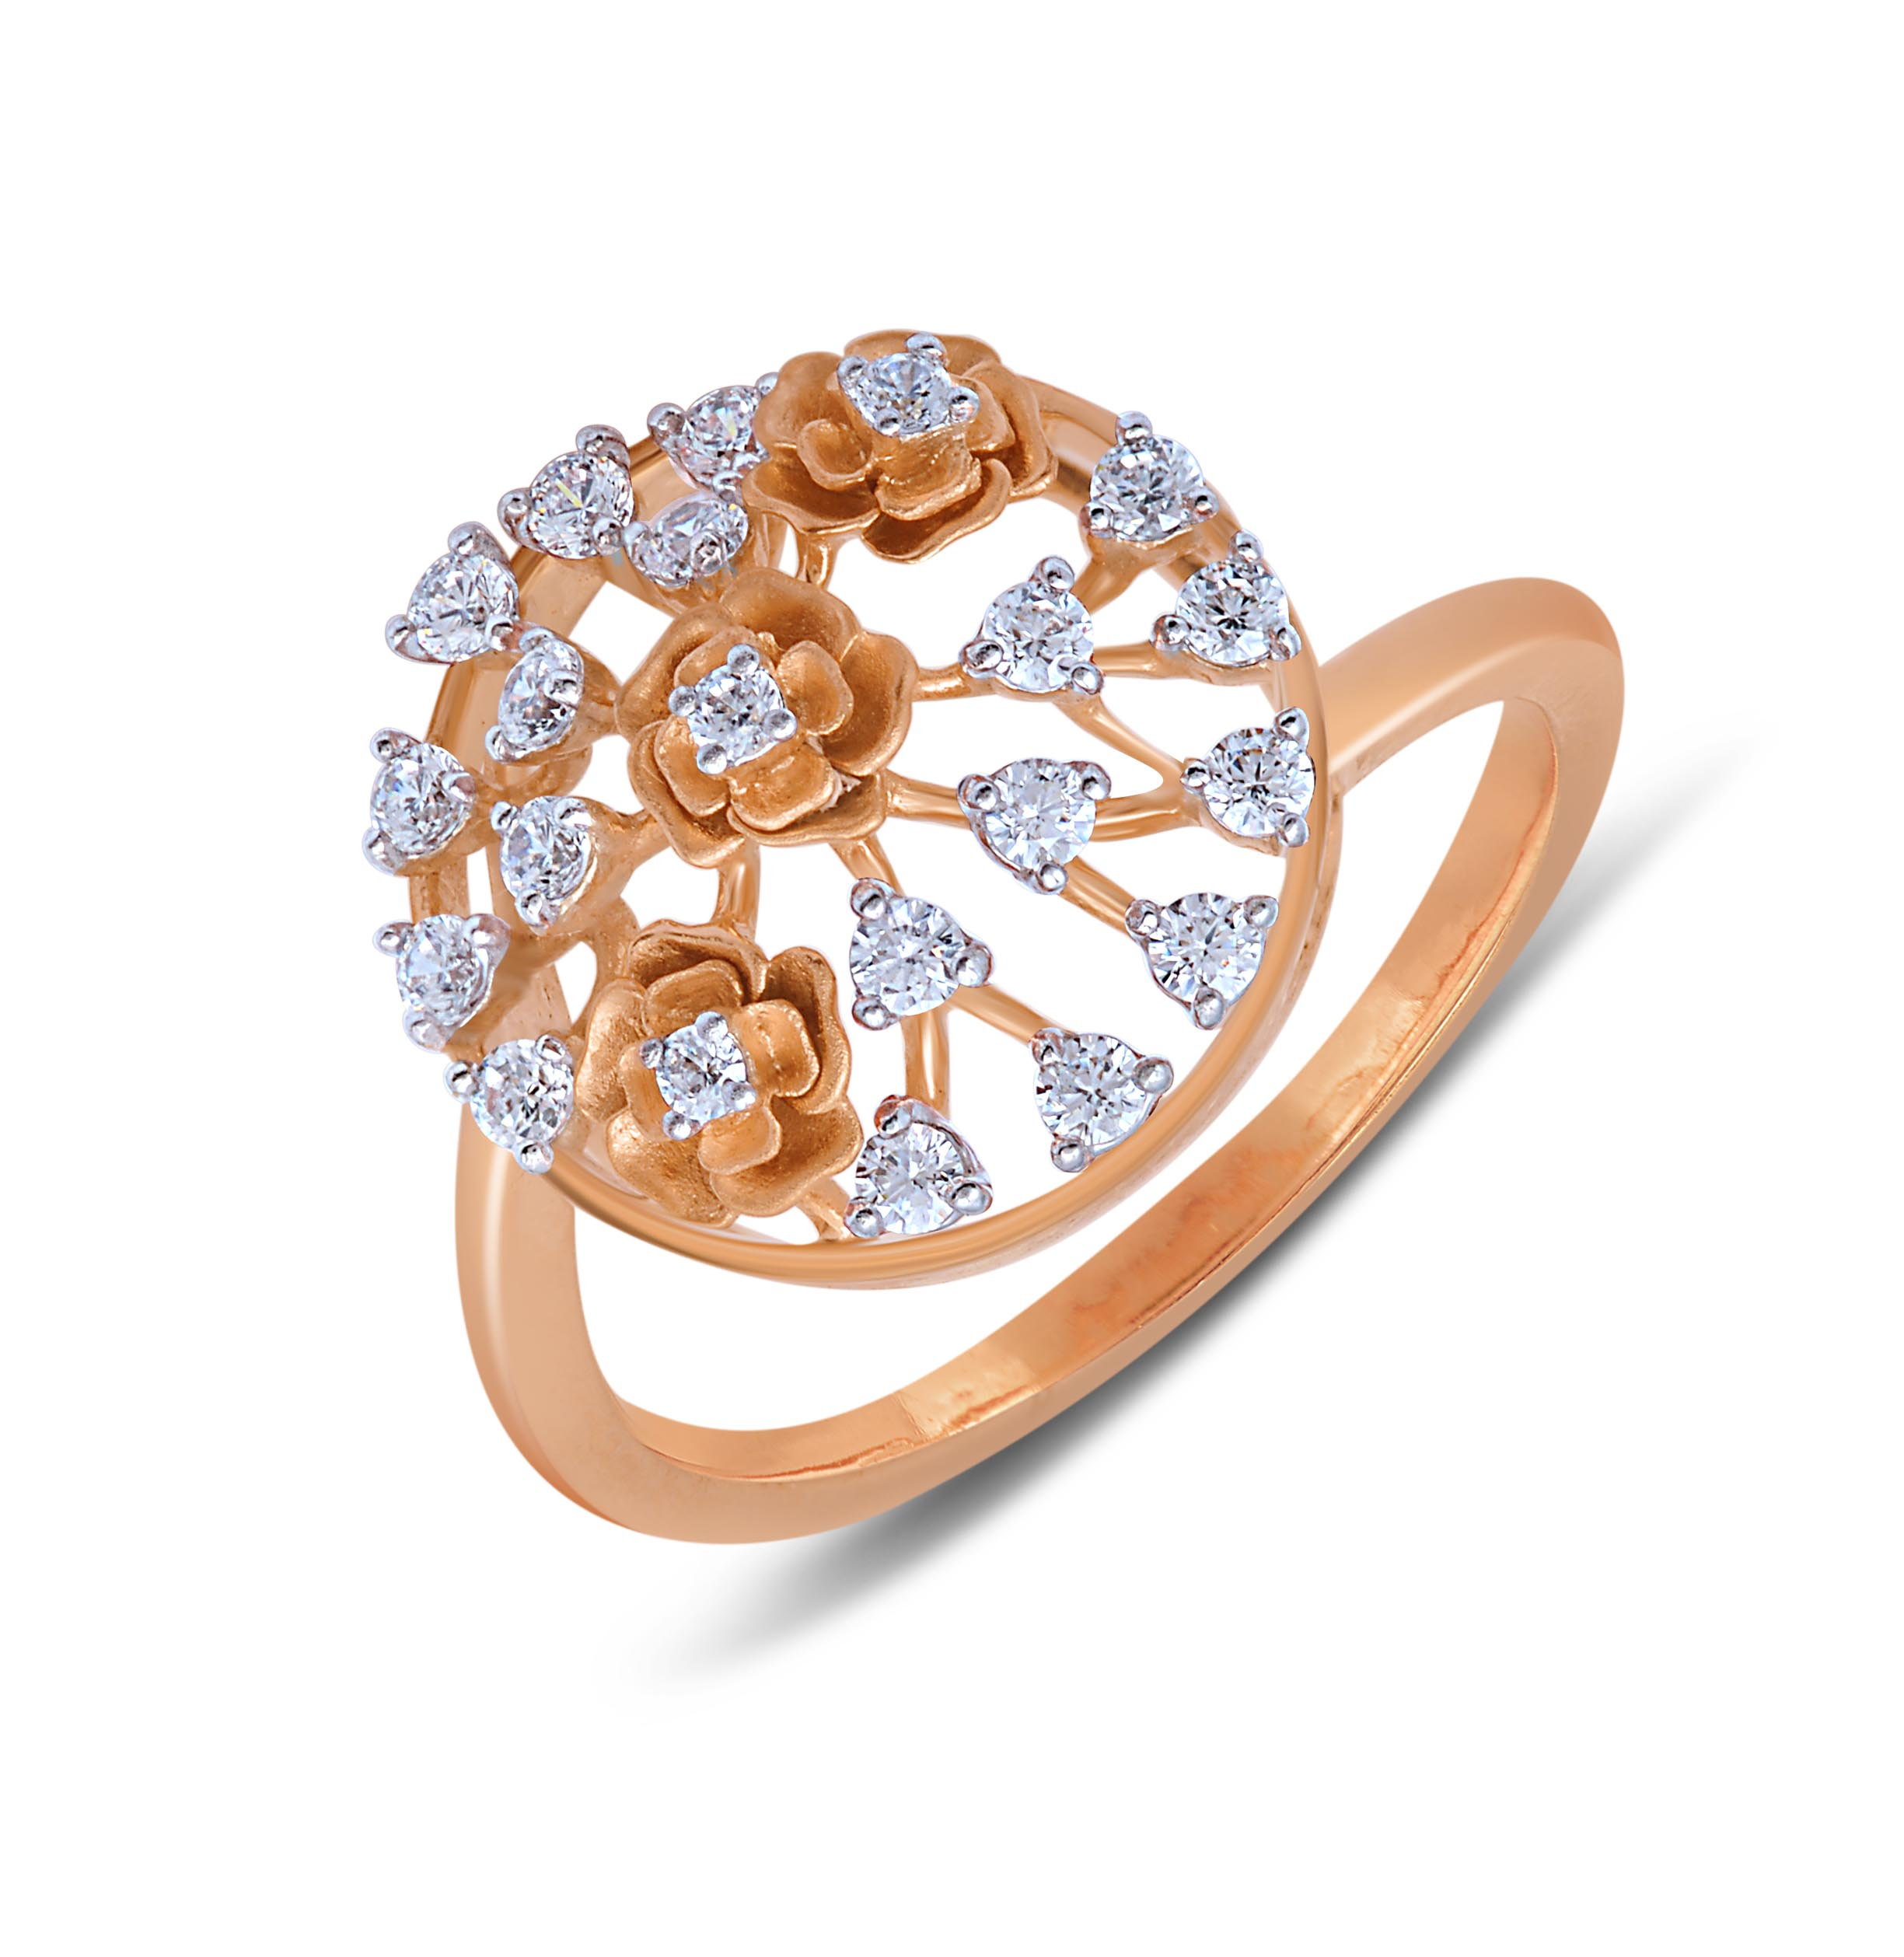 Opulent Diamond Studded Ring